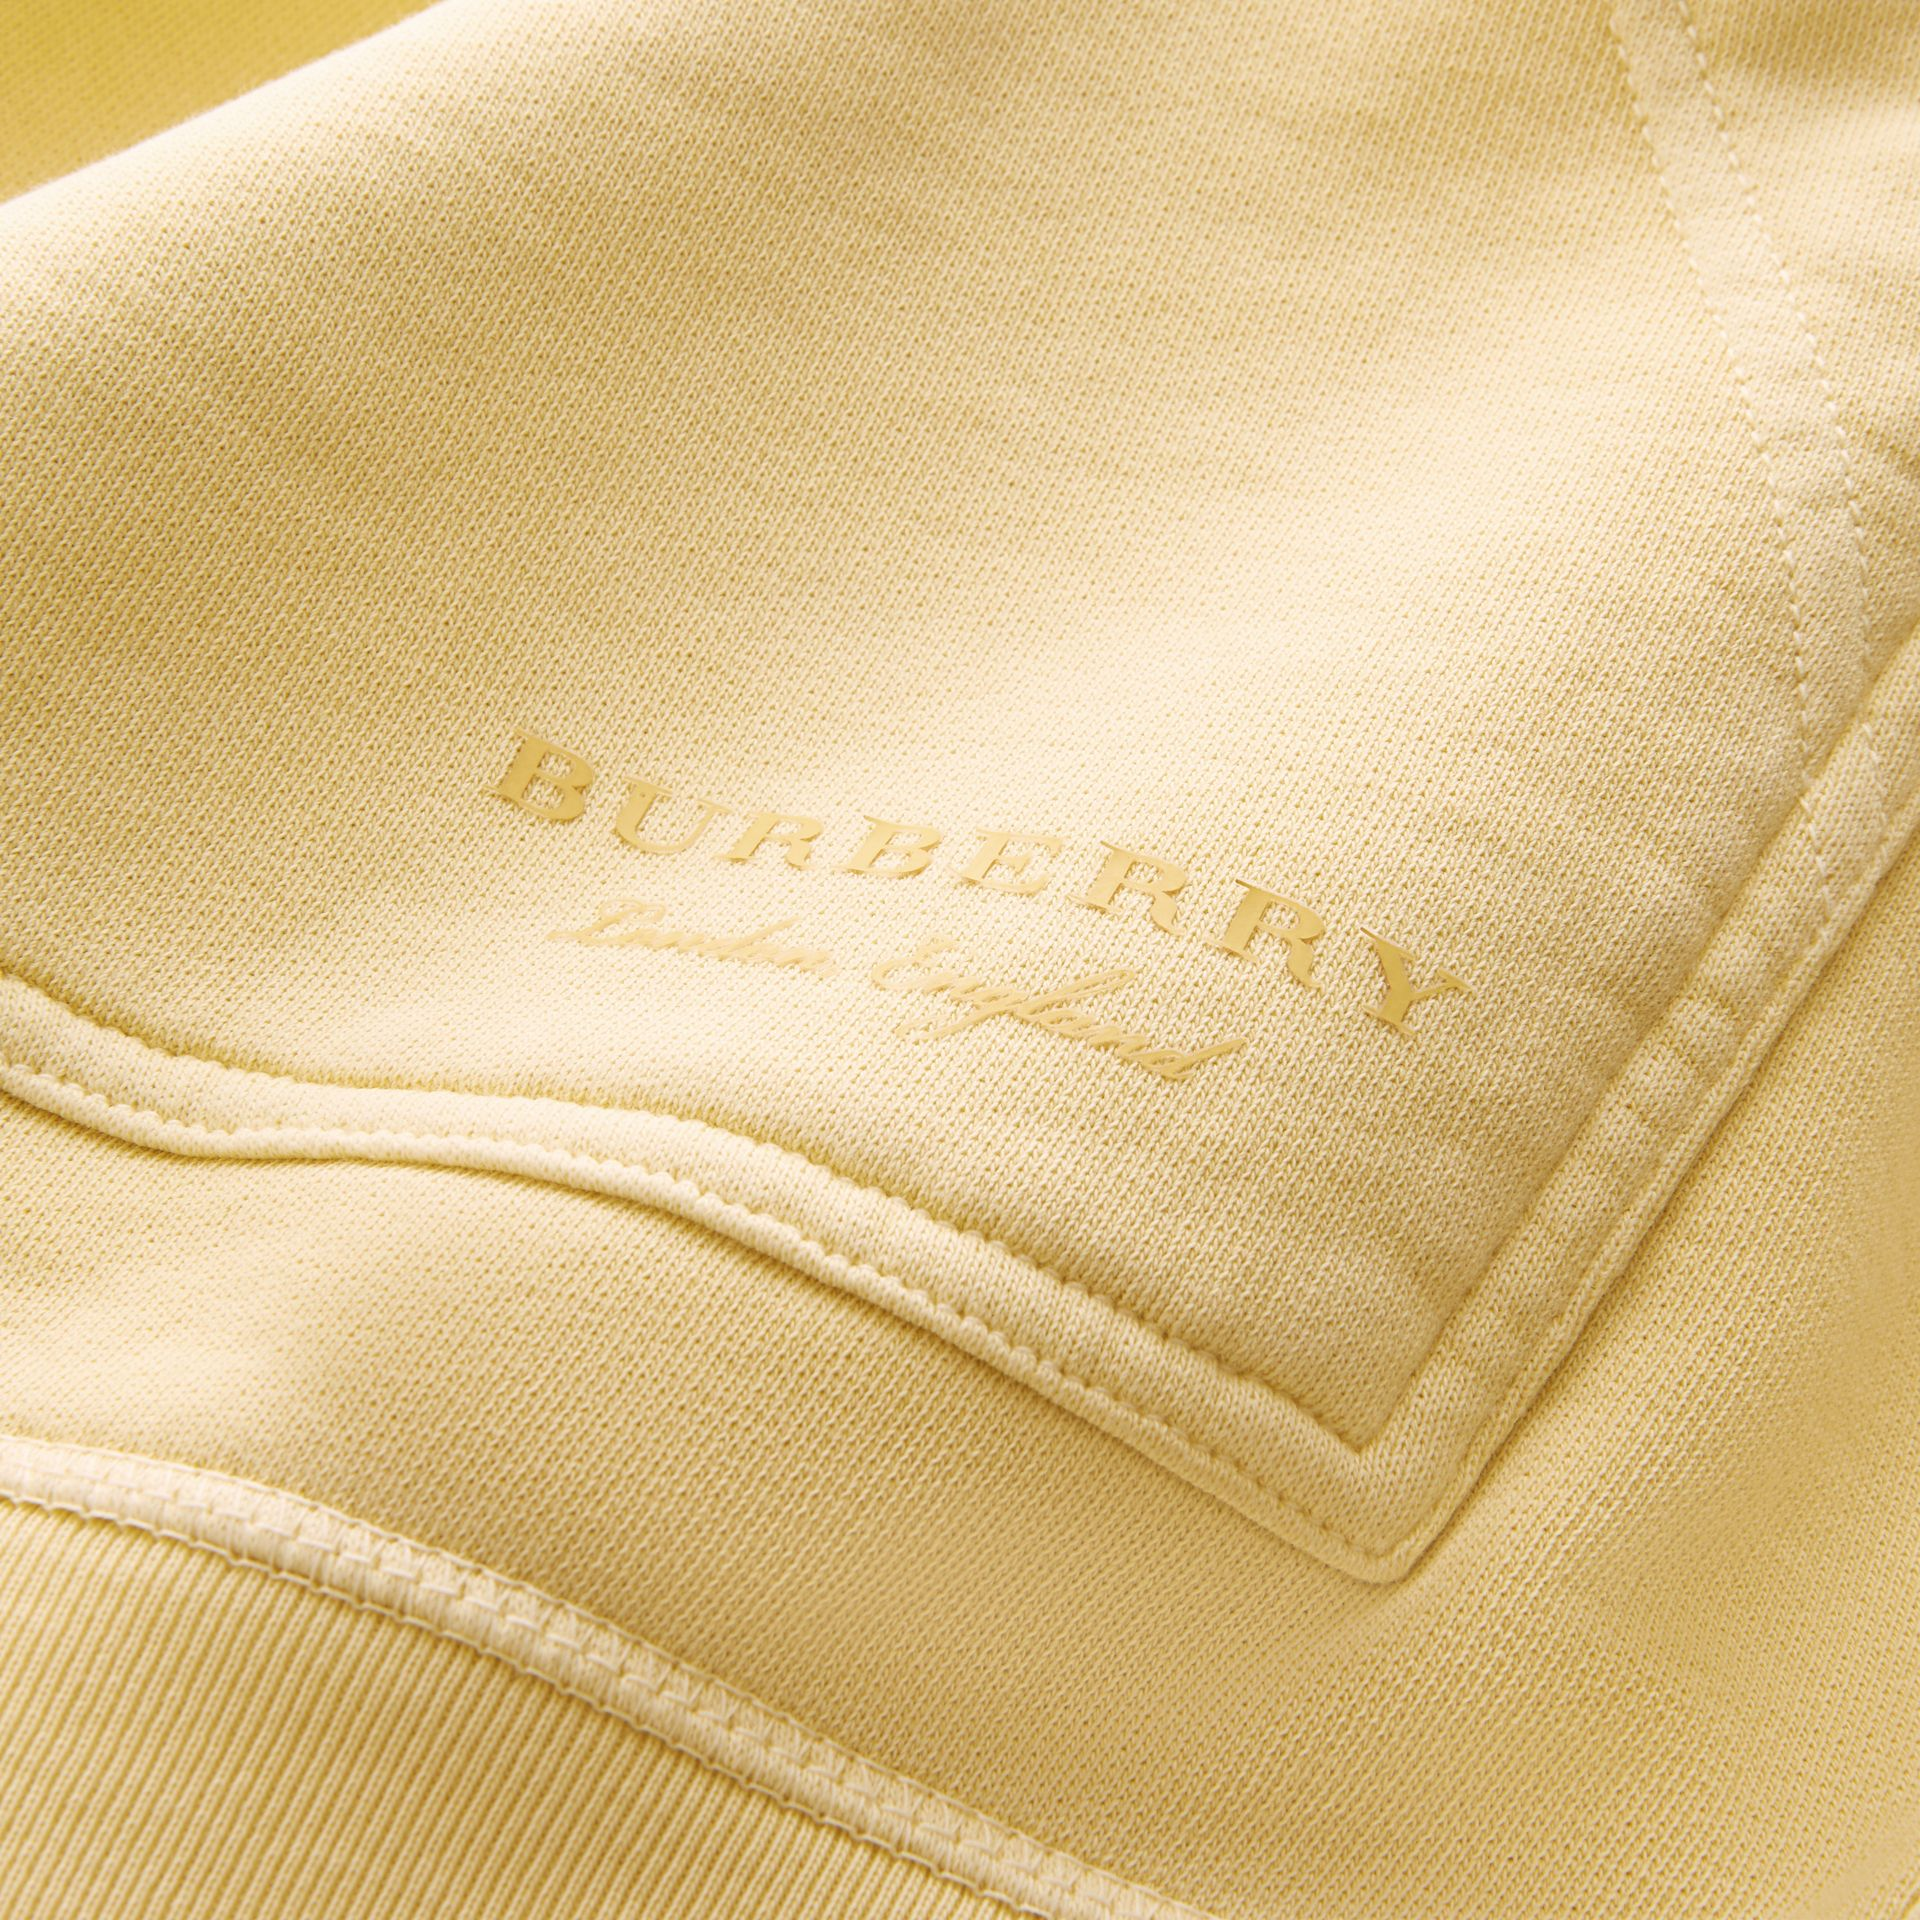 Unisex Pigment-dyed Cotton Oversize Sweatshirt in Pale Yellow - Men | Burberry Hong Kong - gallery image 2